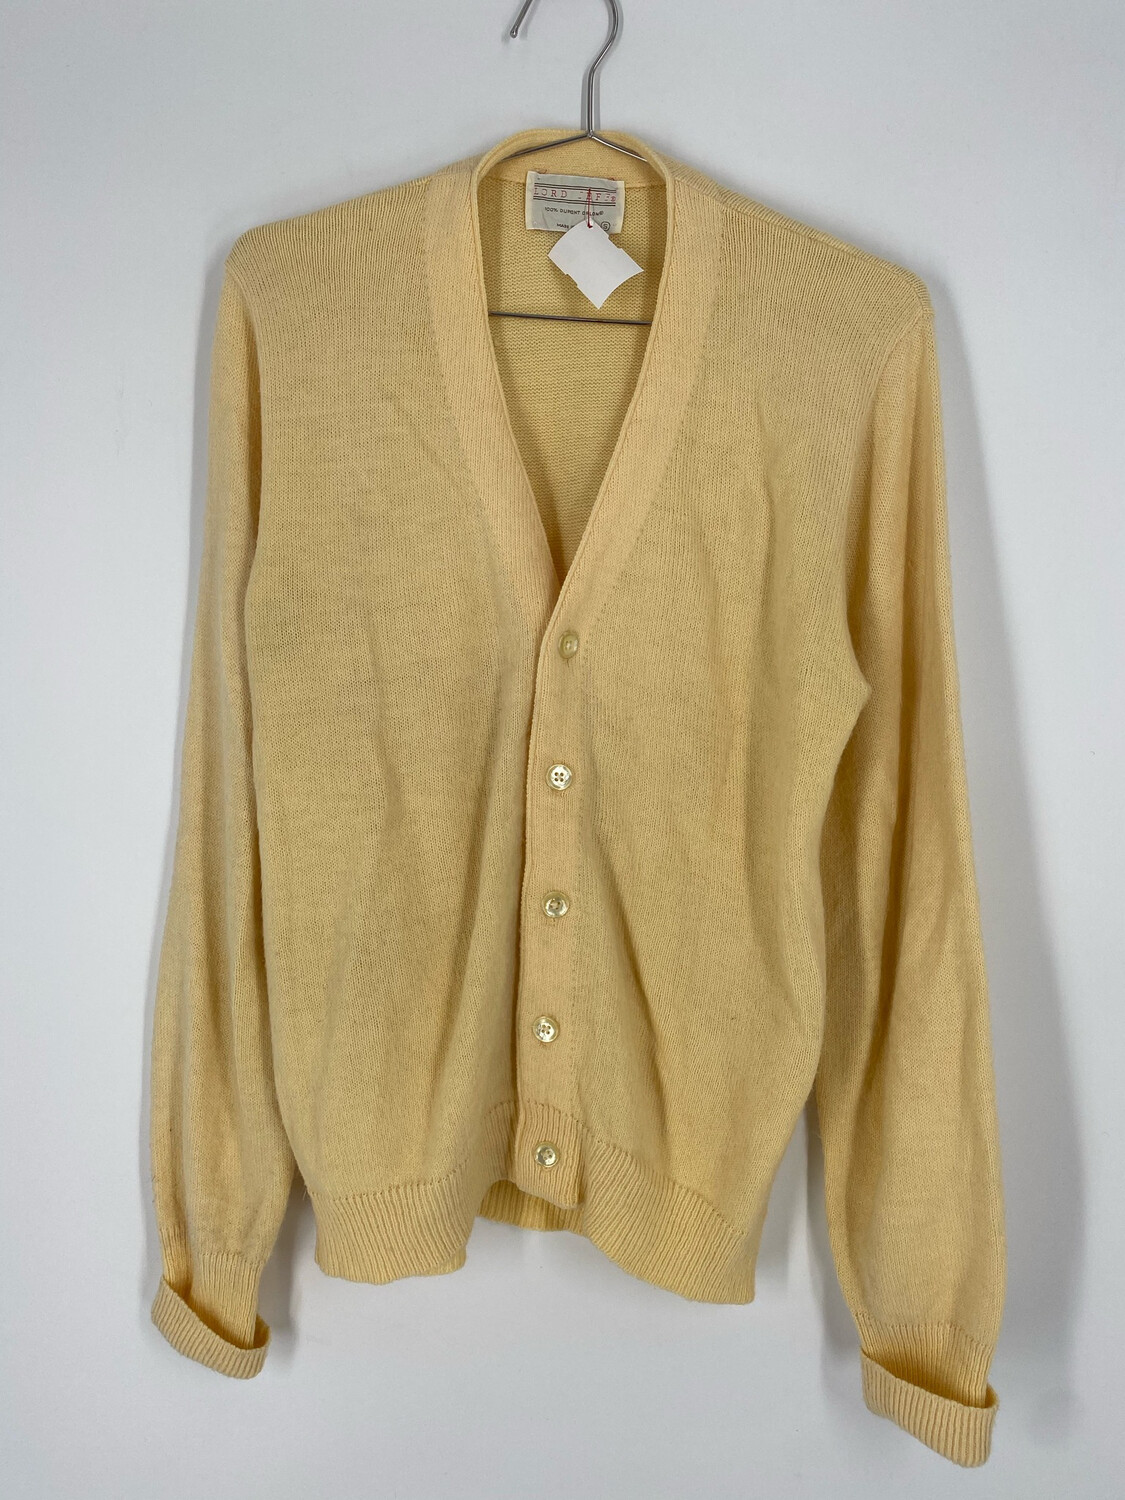 Lord Jeff Vintage Yellow Cardigan Size S